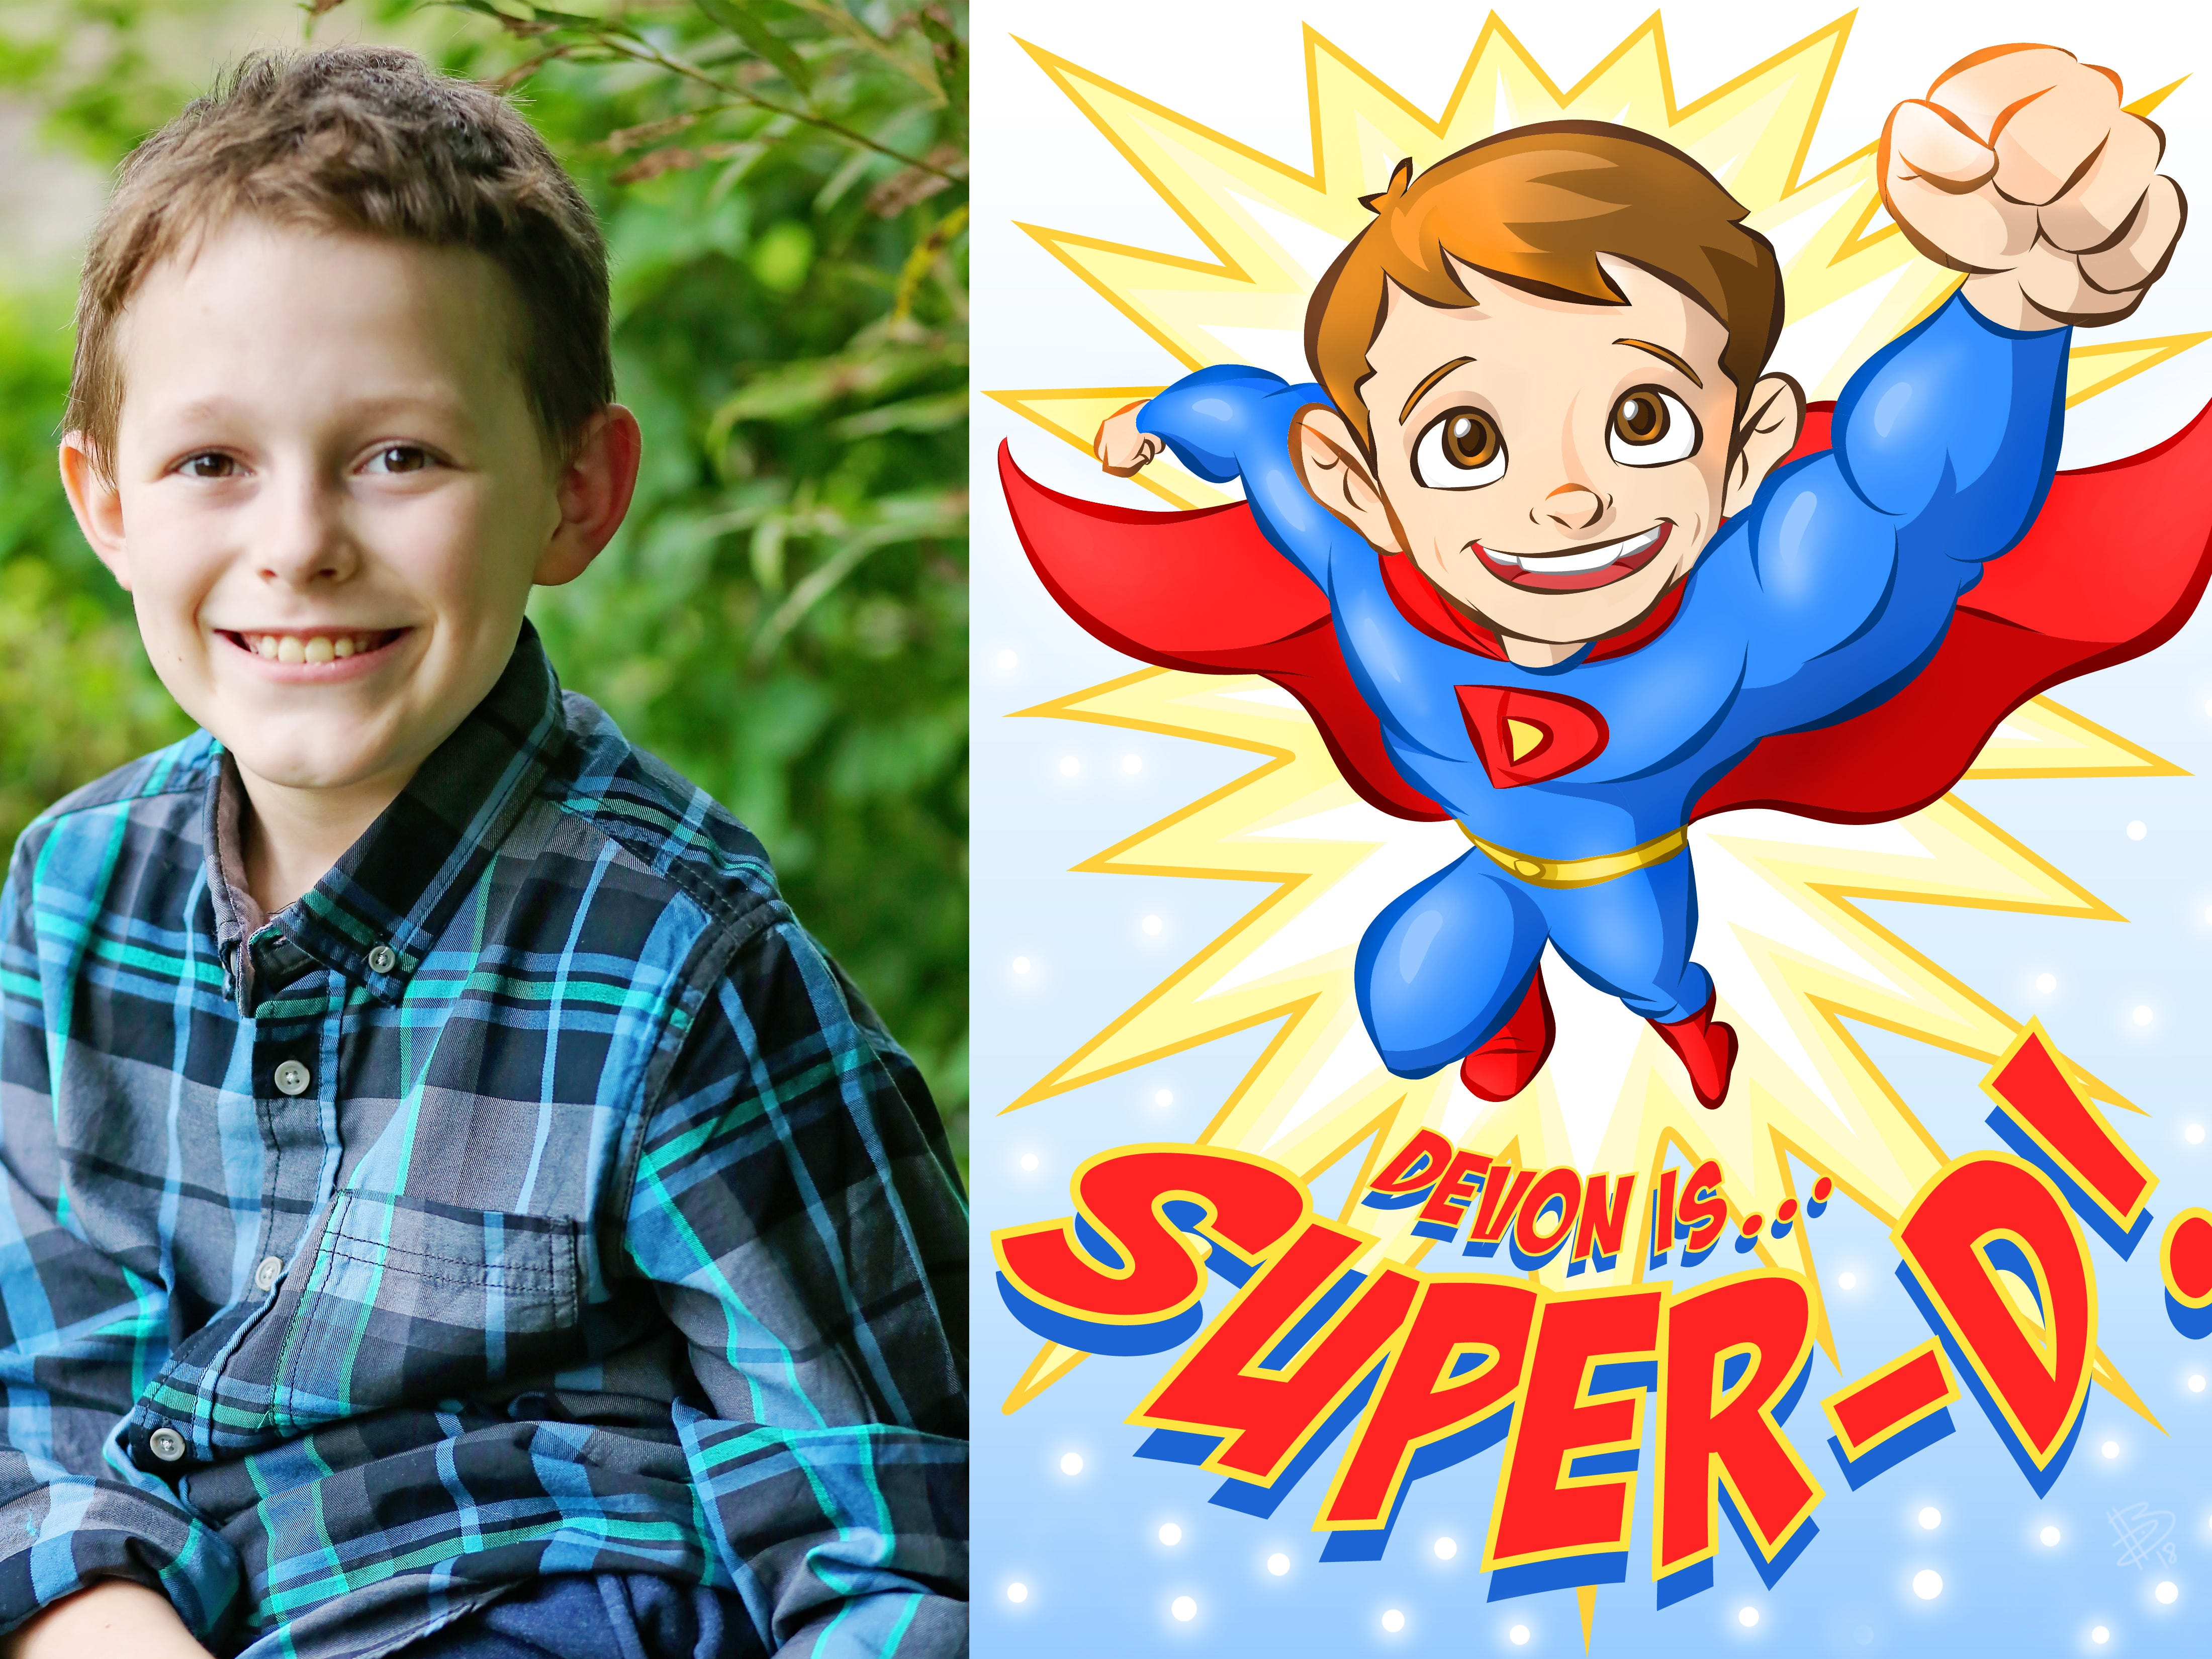 Super-D, a superhero identity of Devon Sweeney, was created by Bryan Dyer, owner of You Are the Hero.